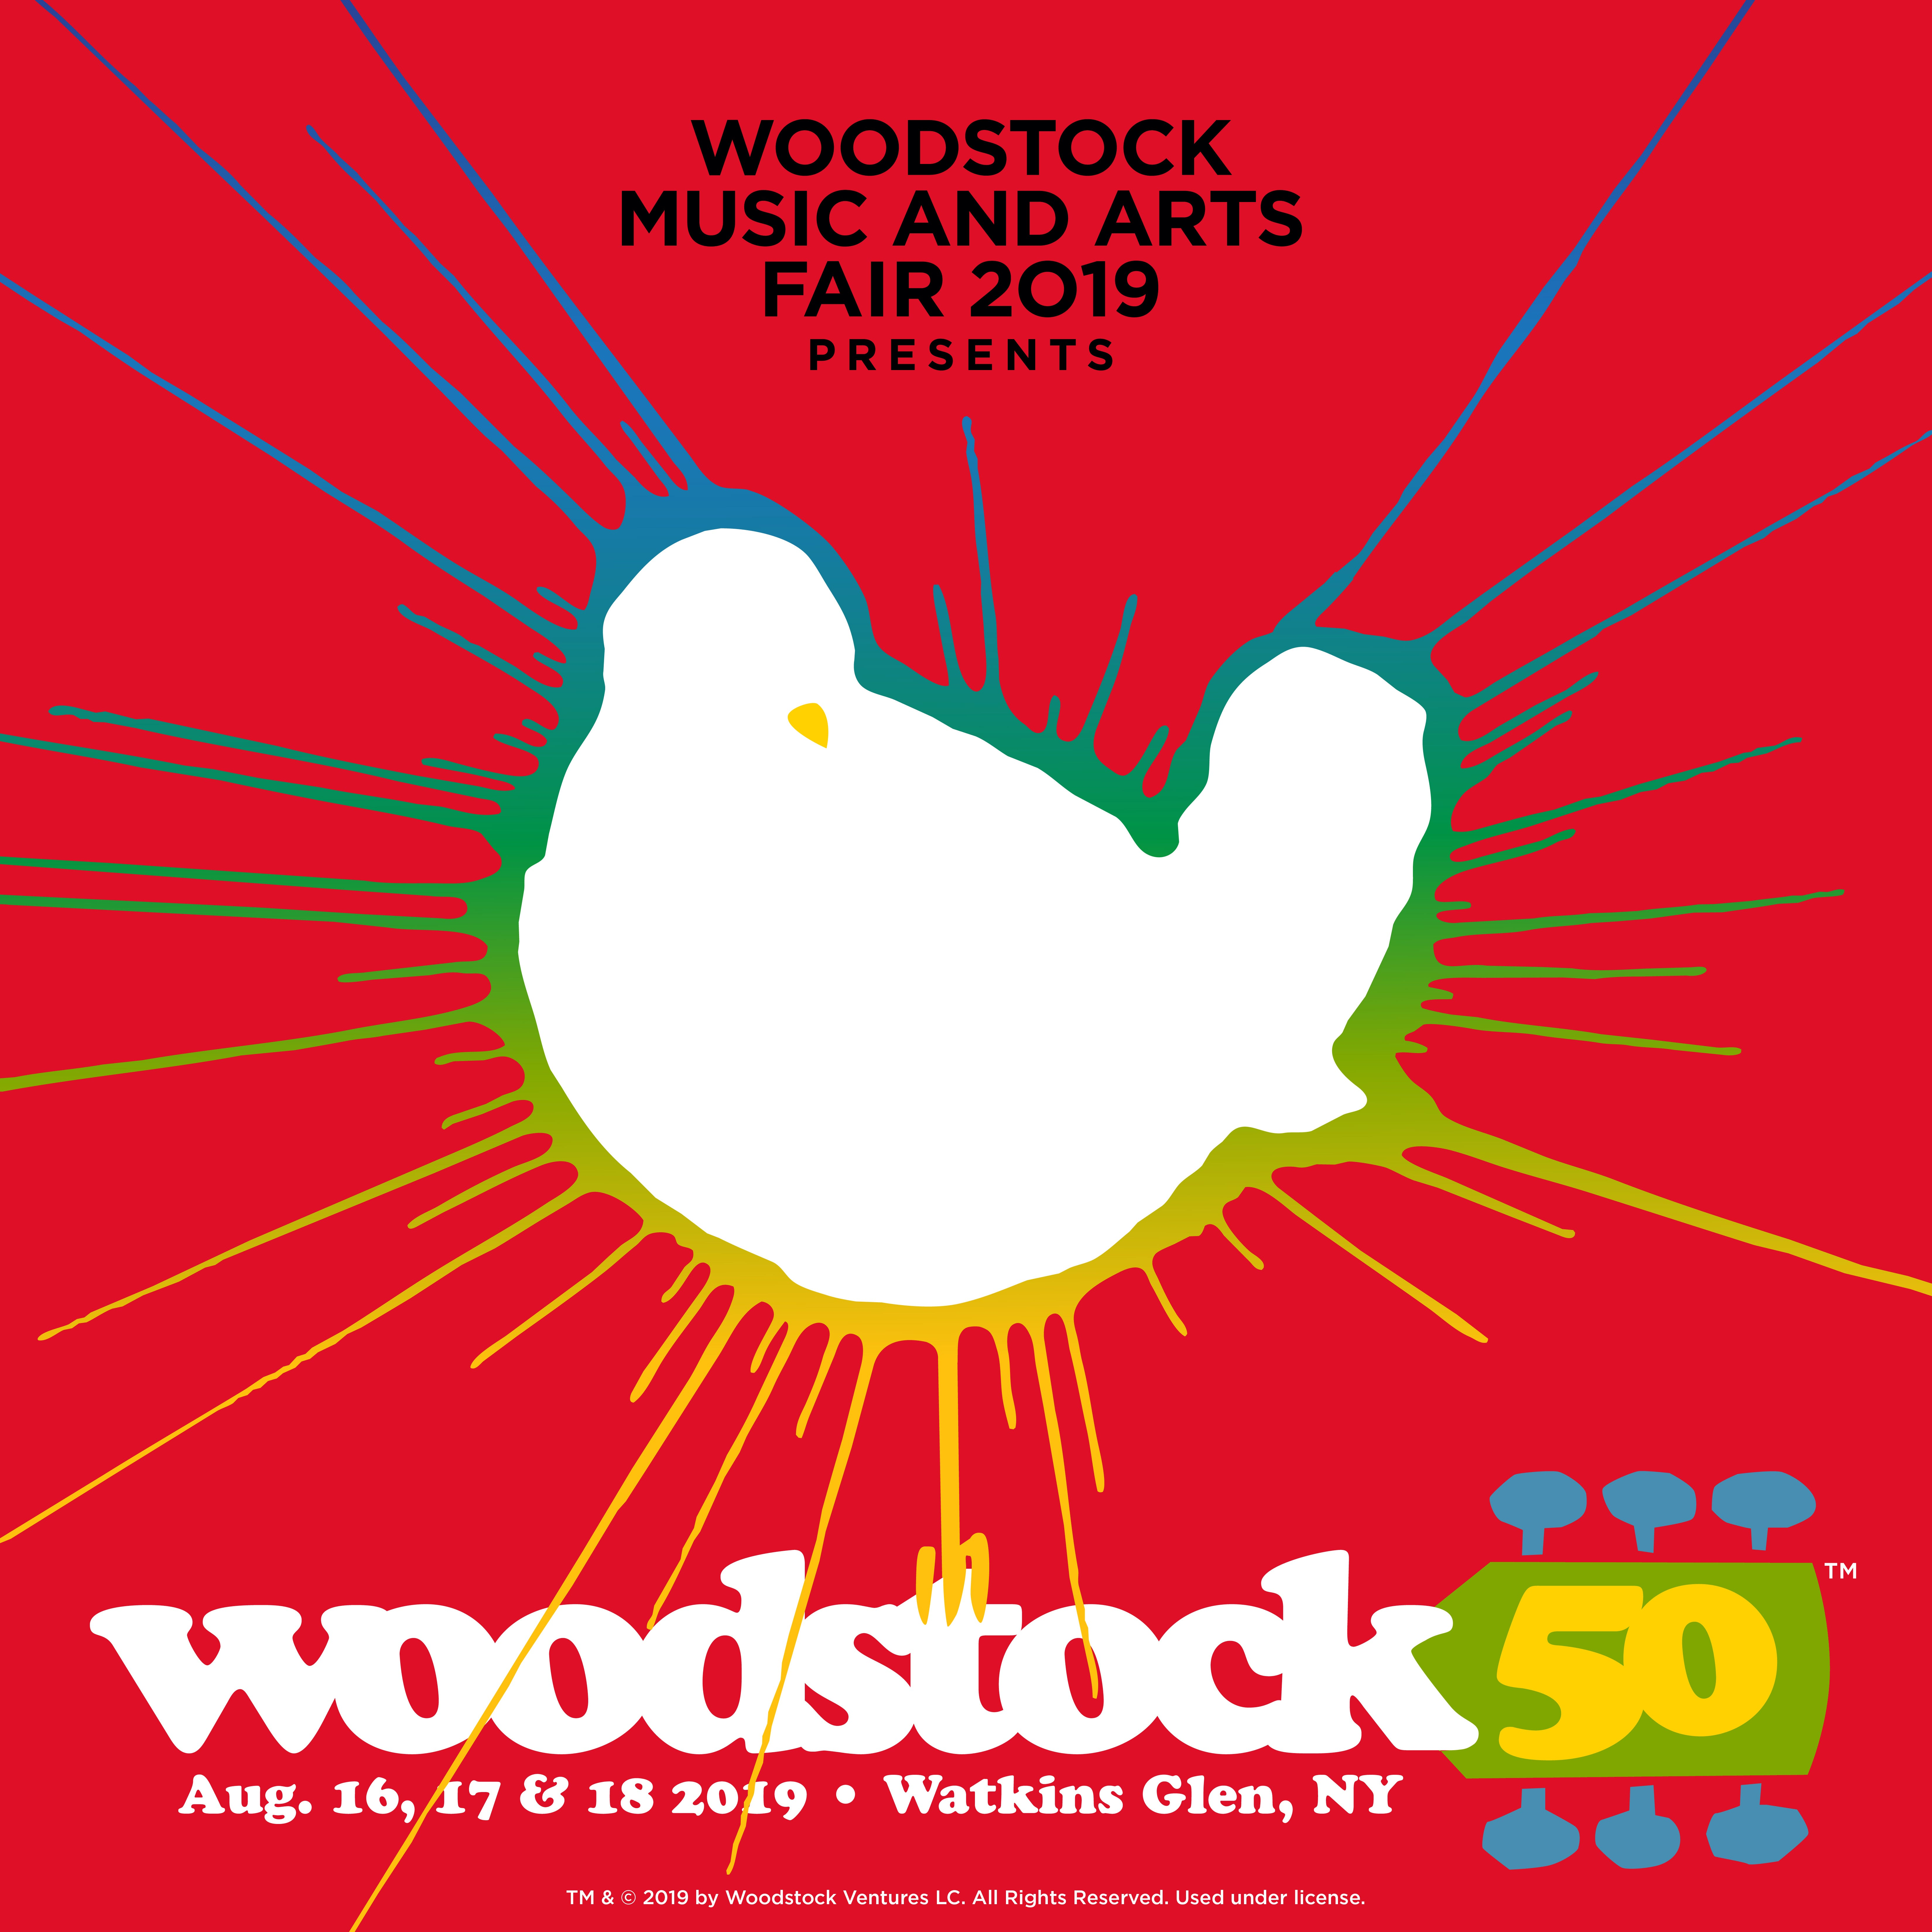 Woodstock 50: New details and more to know about the anniversary show in Watkins Glen